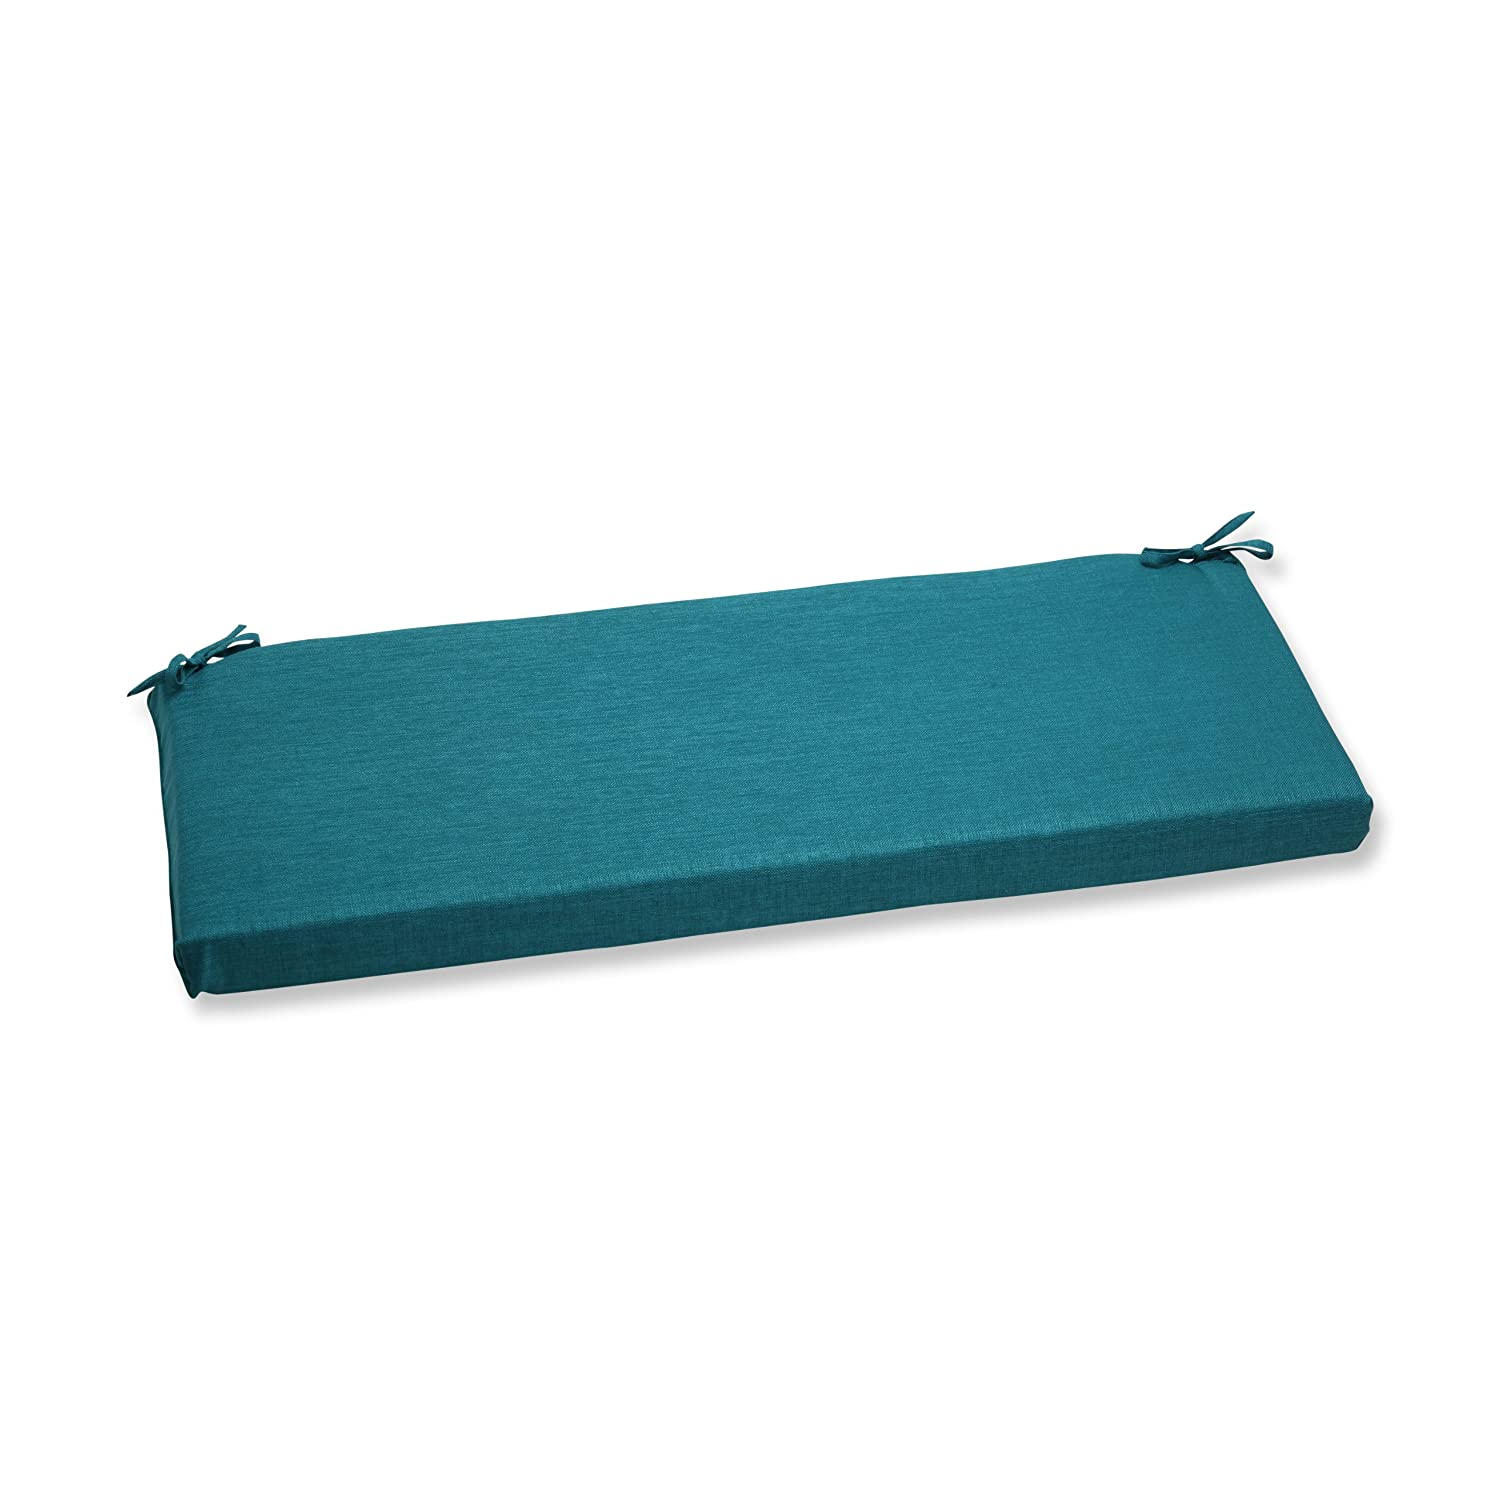 Pillow Perfect Outdoor Rave Teal Bench Cushion